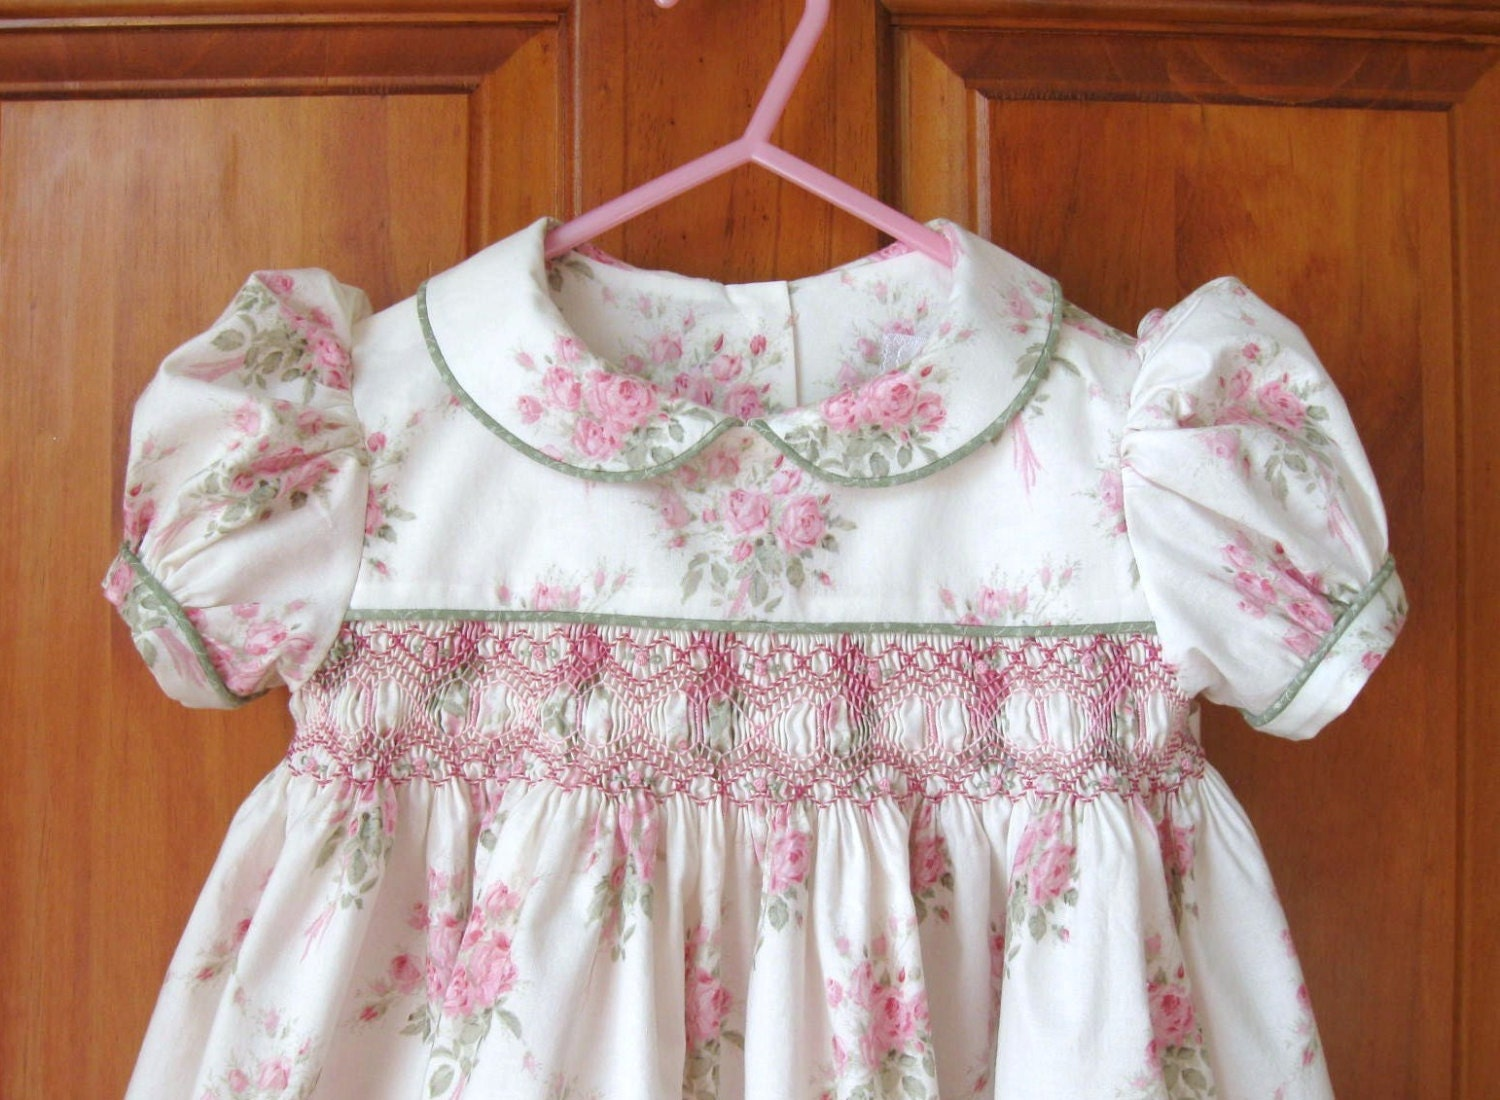 Smocked dresses remain a favorite for a girl. Comfort is key with children and this type of dress allows a girl to run and play without being confined by something tight. Its loose design offers the girl an empire waist that is cut to flow off the body.